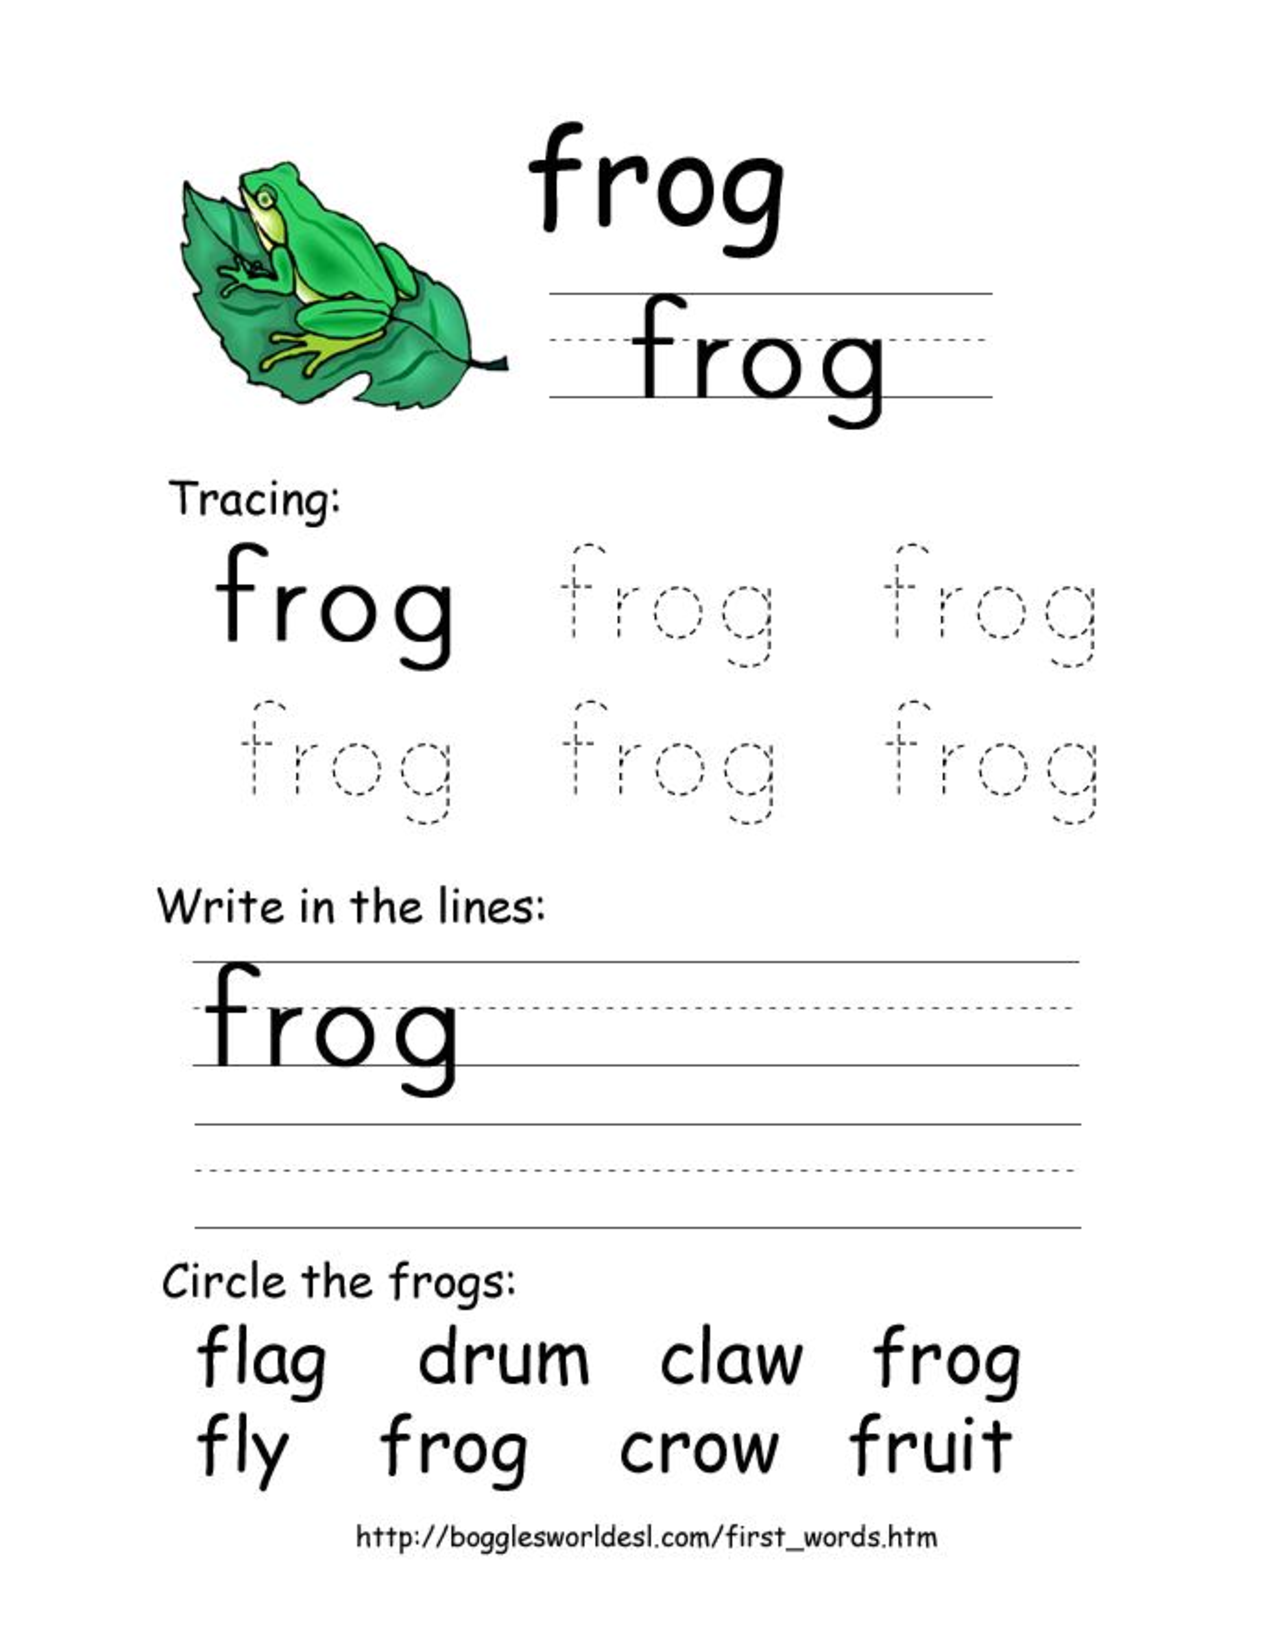 Worksheet Consonant Blends Worksheets For Kindergarten 5 best images of printable phonics worksheets free consonant blends worksheets